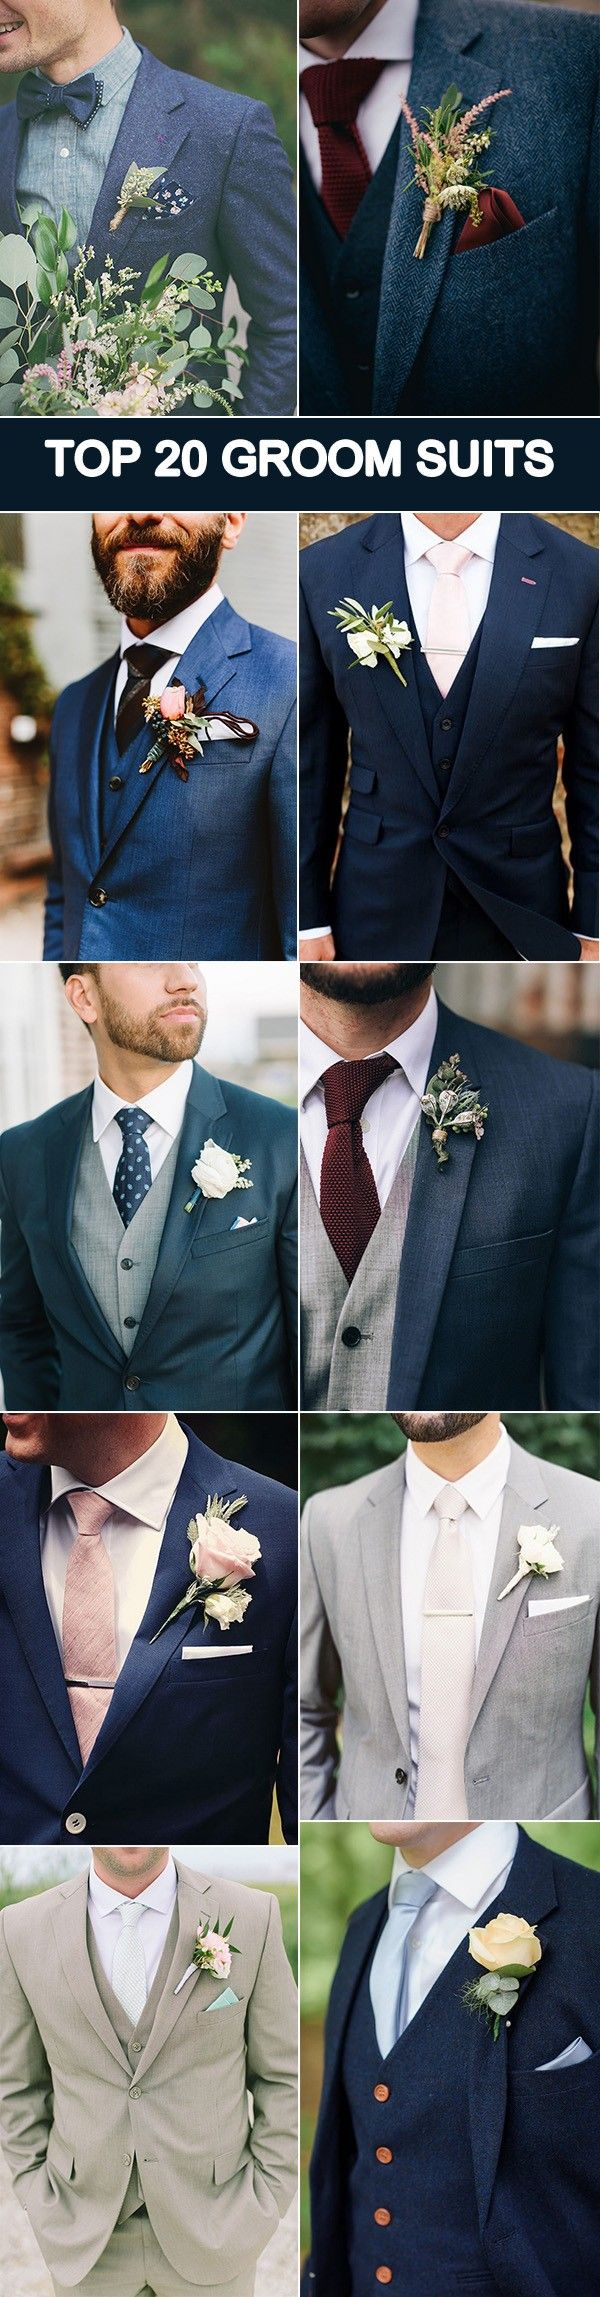 20 Popular Groom Suit Ideas for Your Big Day | Weddings, Wedding ...